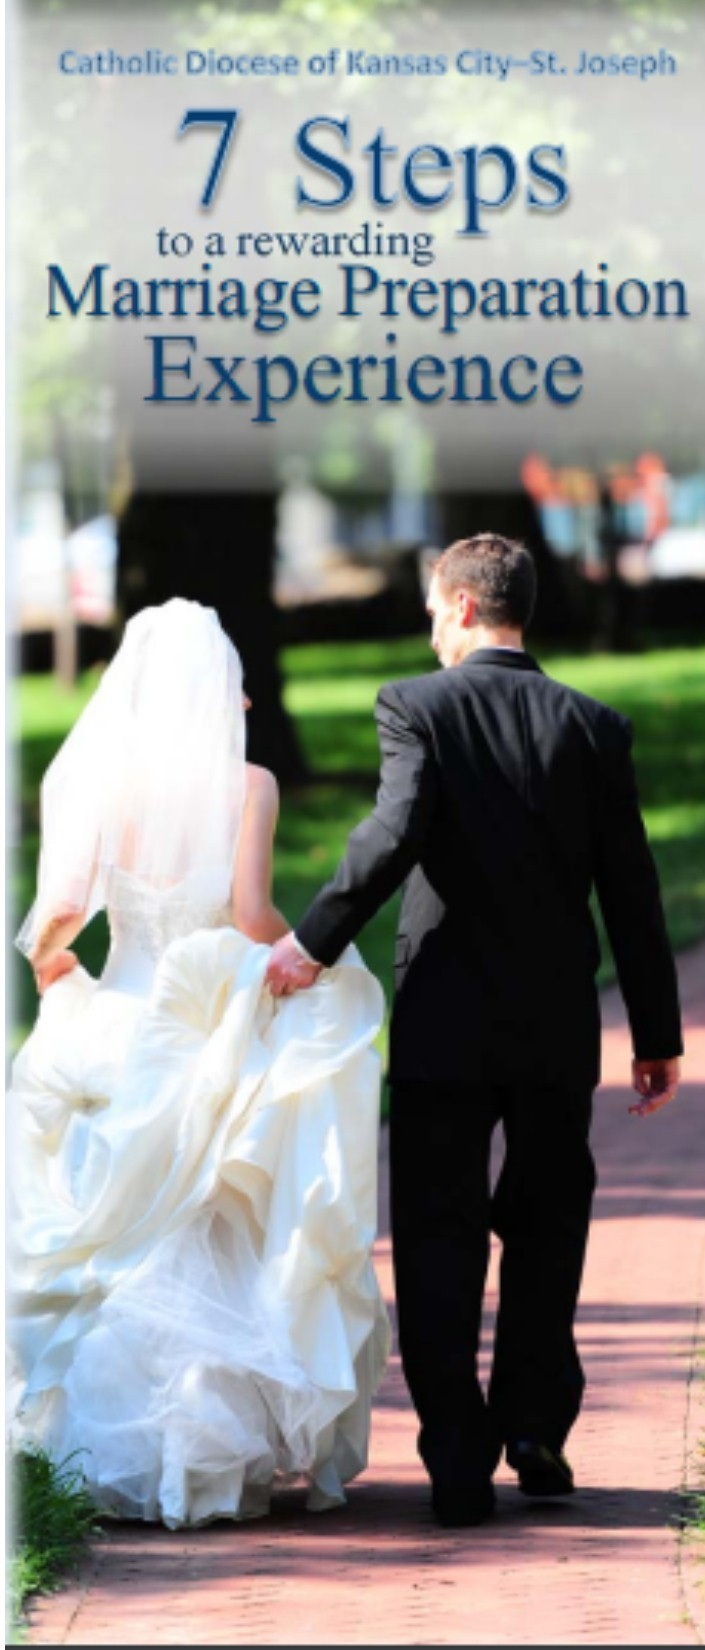 7 Steps to a Rewarding Marriage Preparation Experience